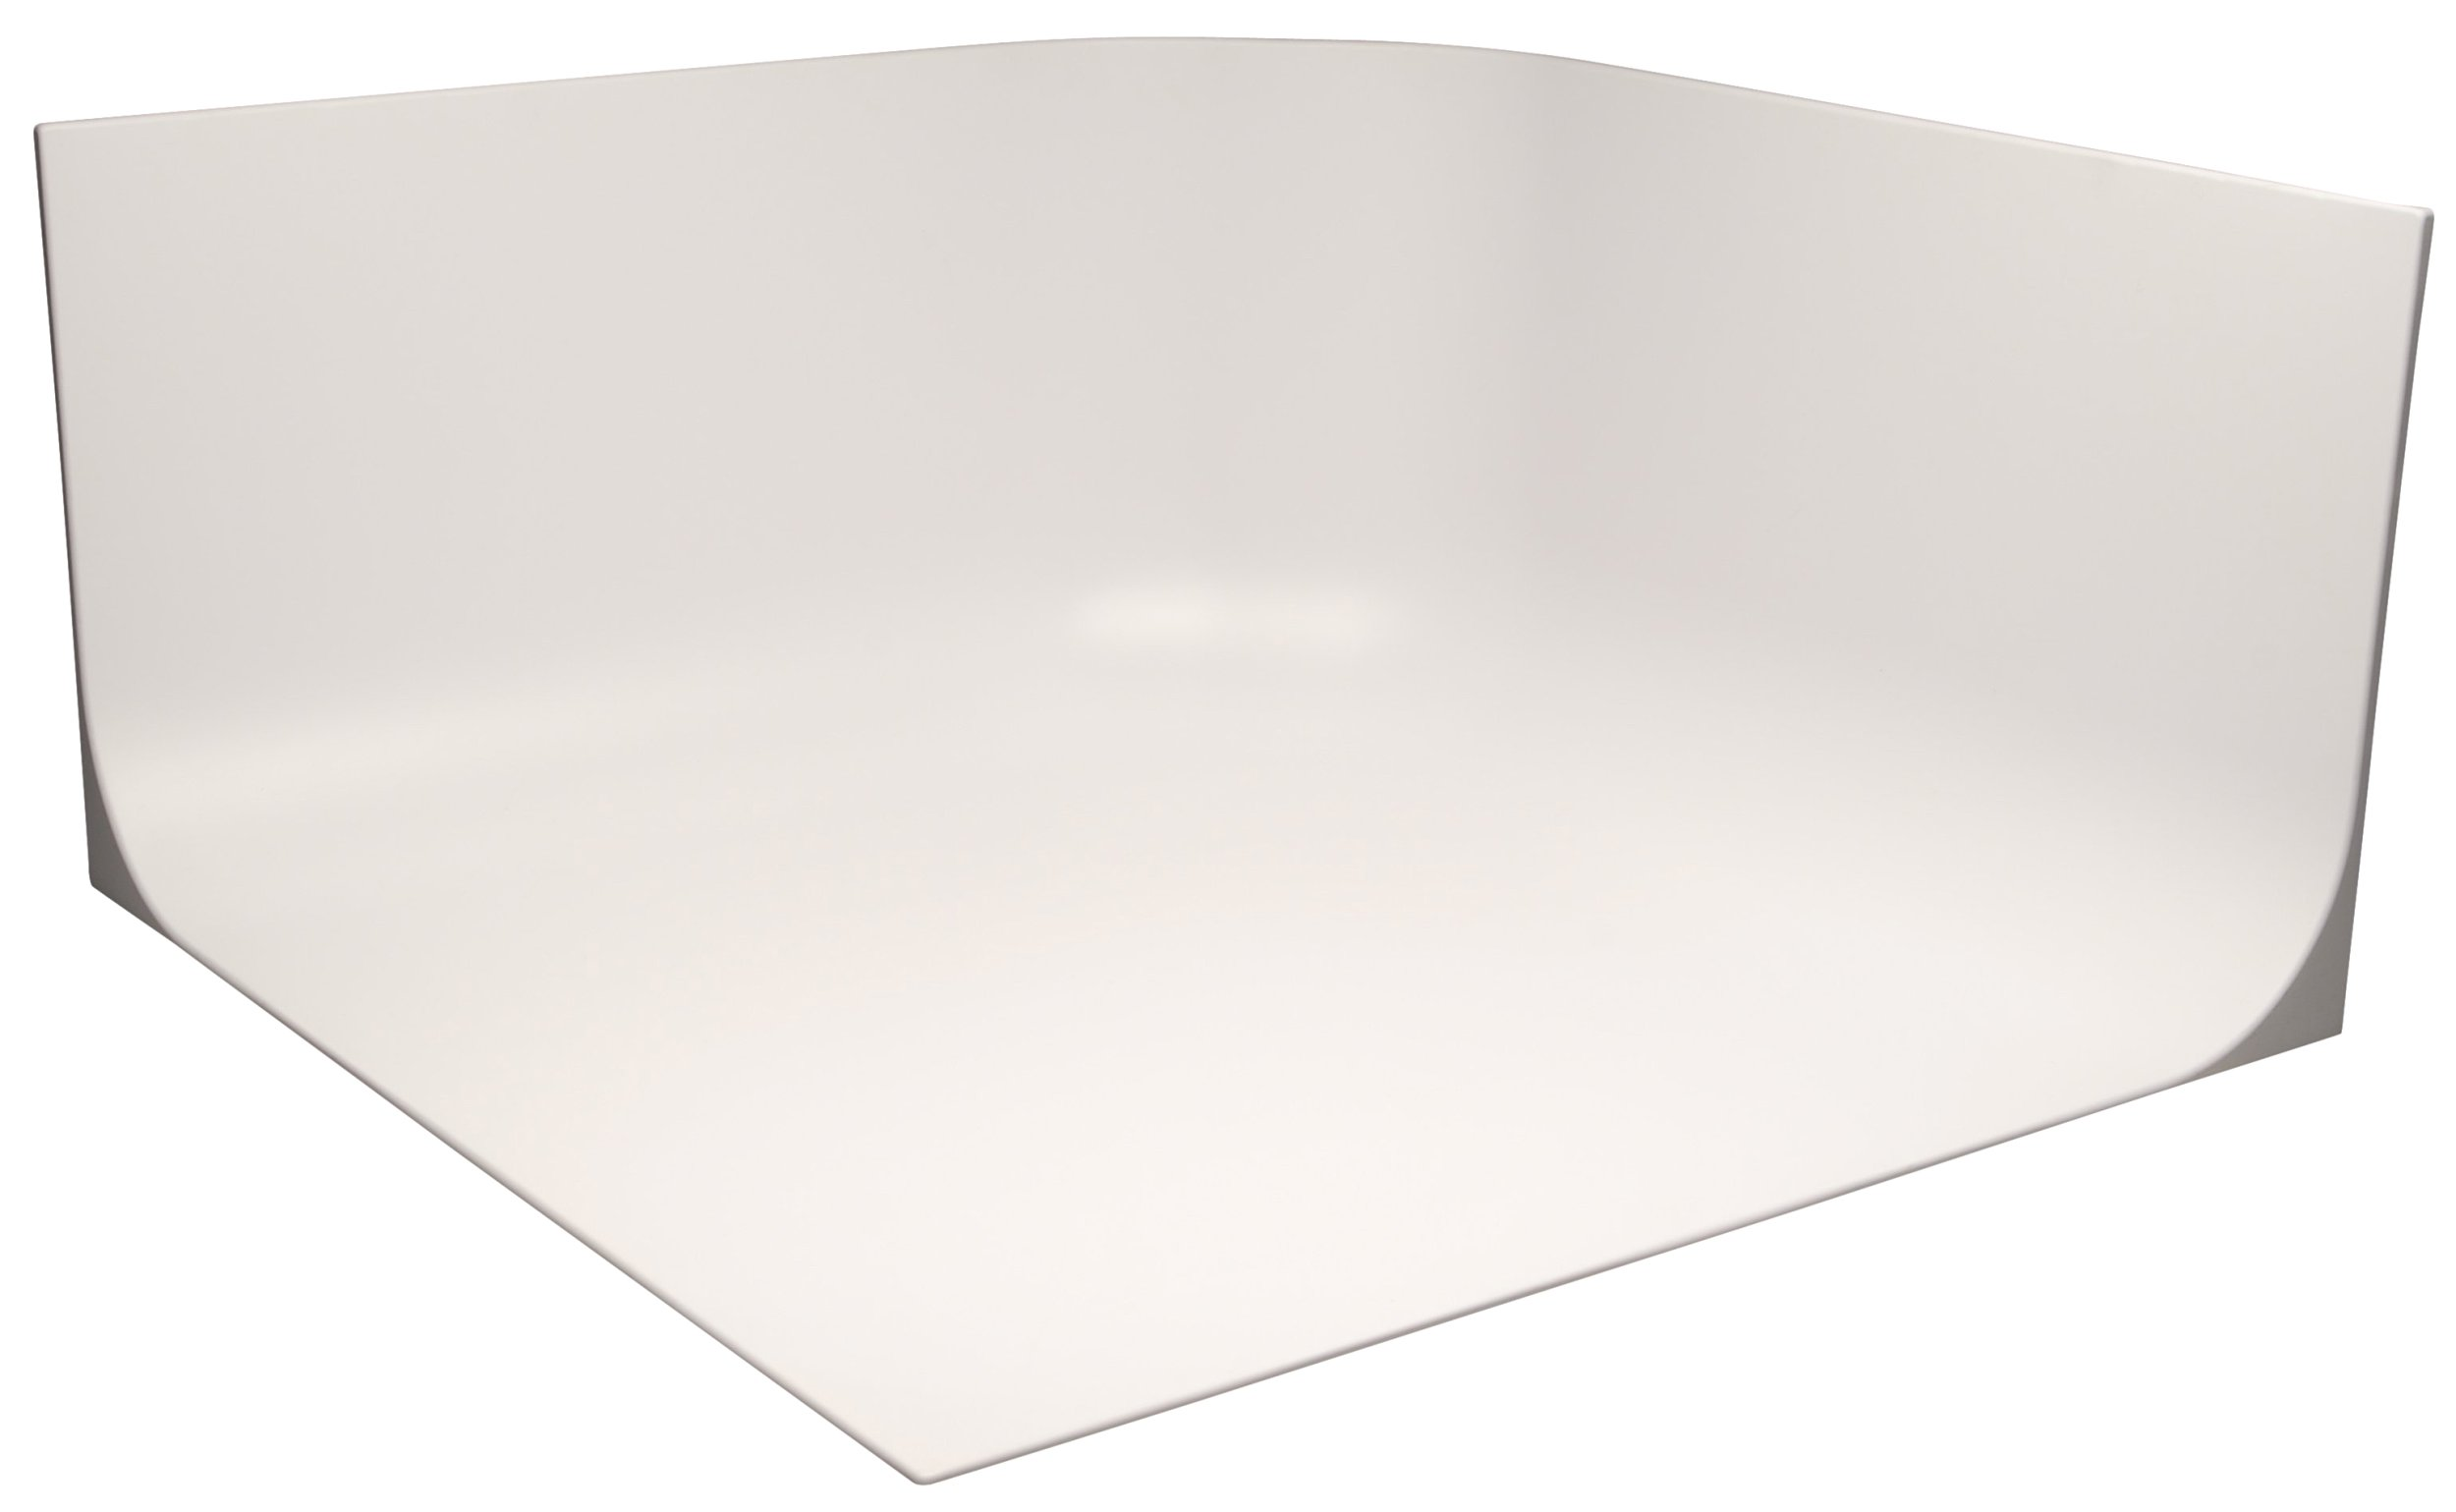 MyStudio MS32CYC Professional Table Top Photo Studio Seamless Photo Cyc Background for Product Photography, 32''x 32''x 16'' by MyStudio